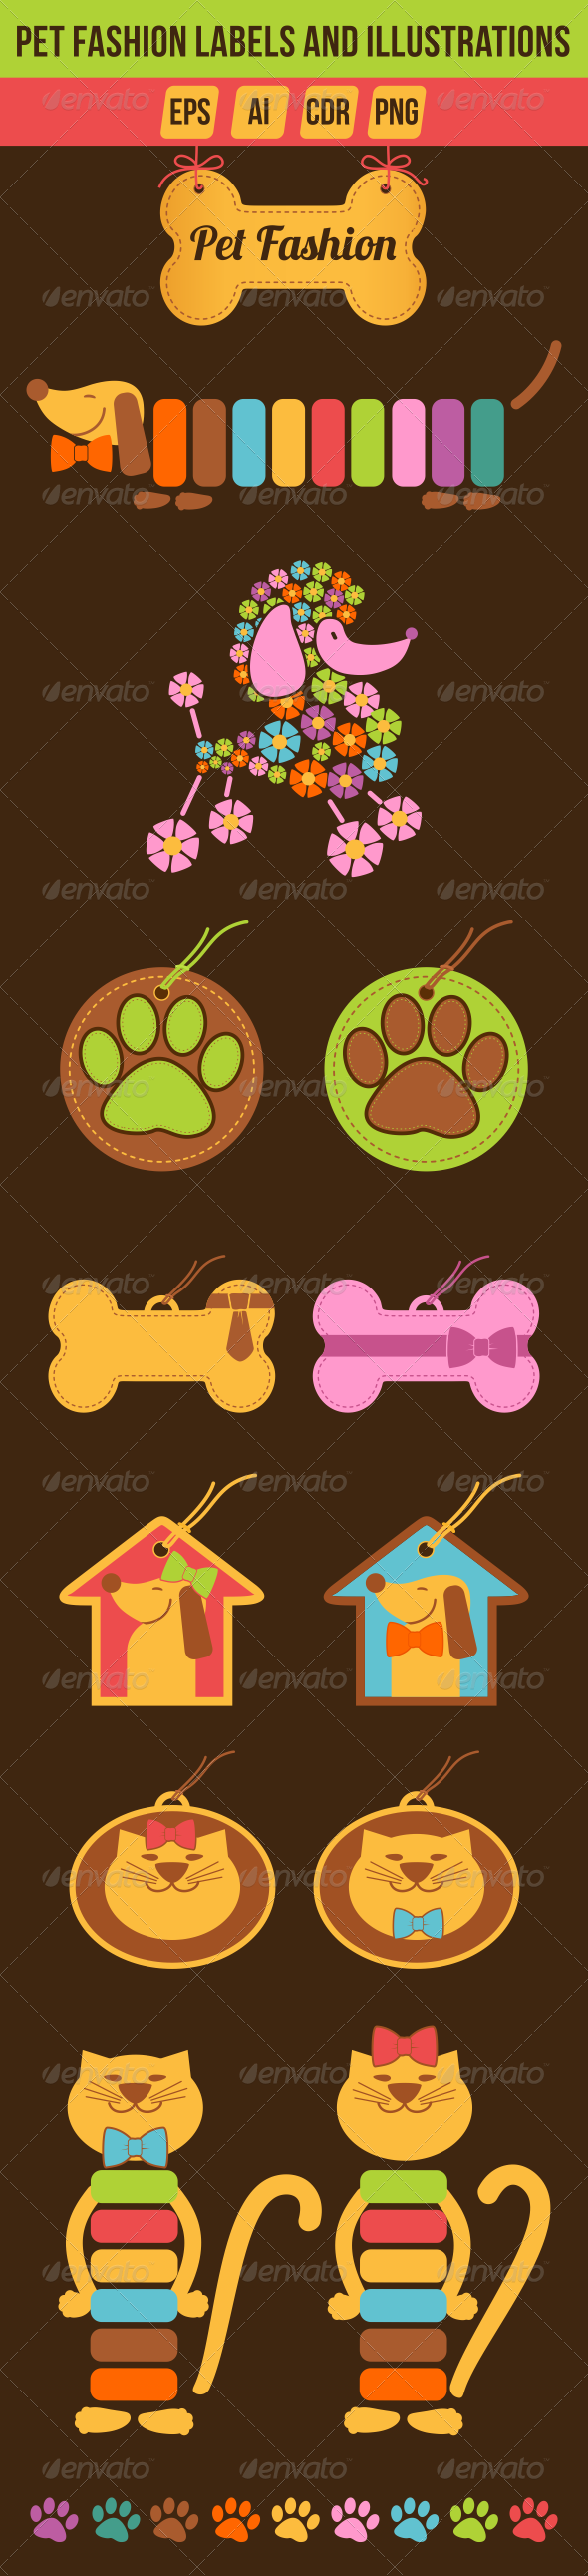 Pet Fashion Labels and Illustrations